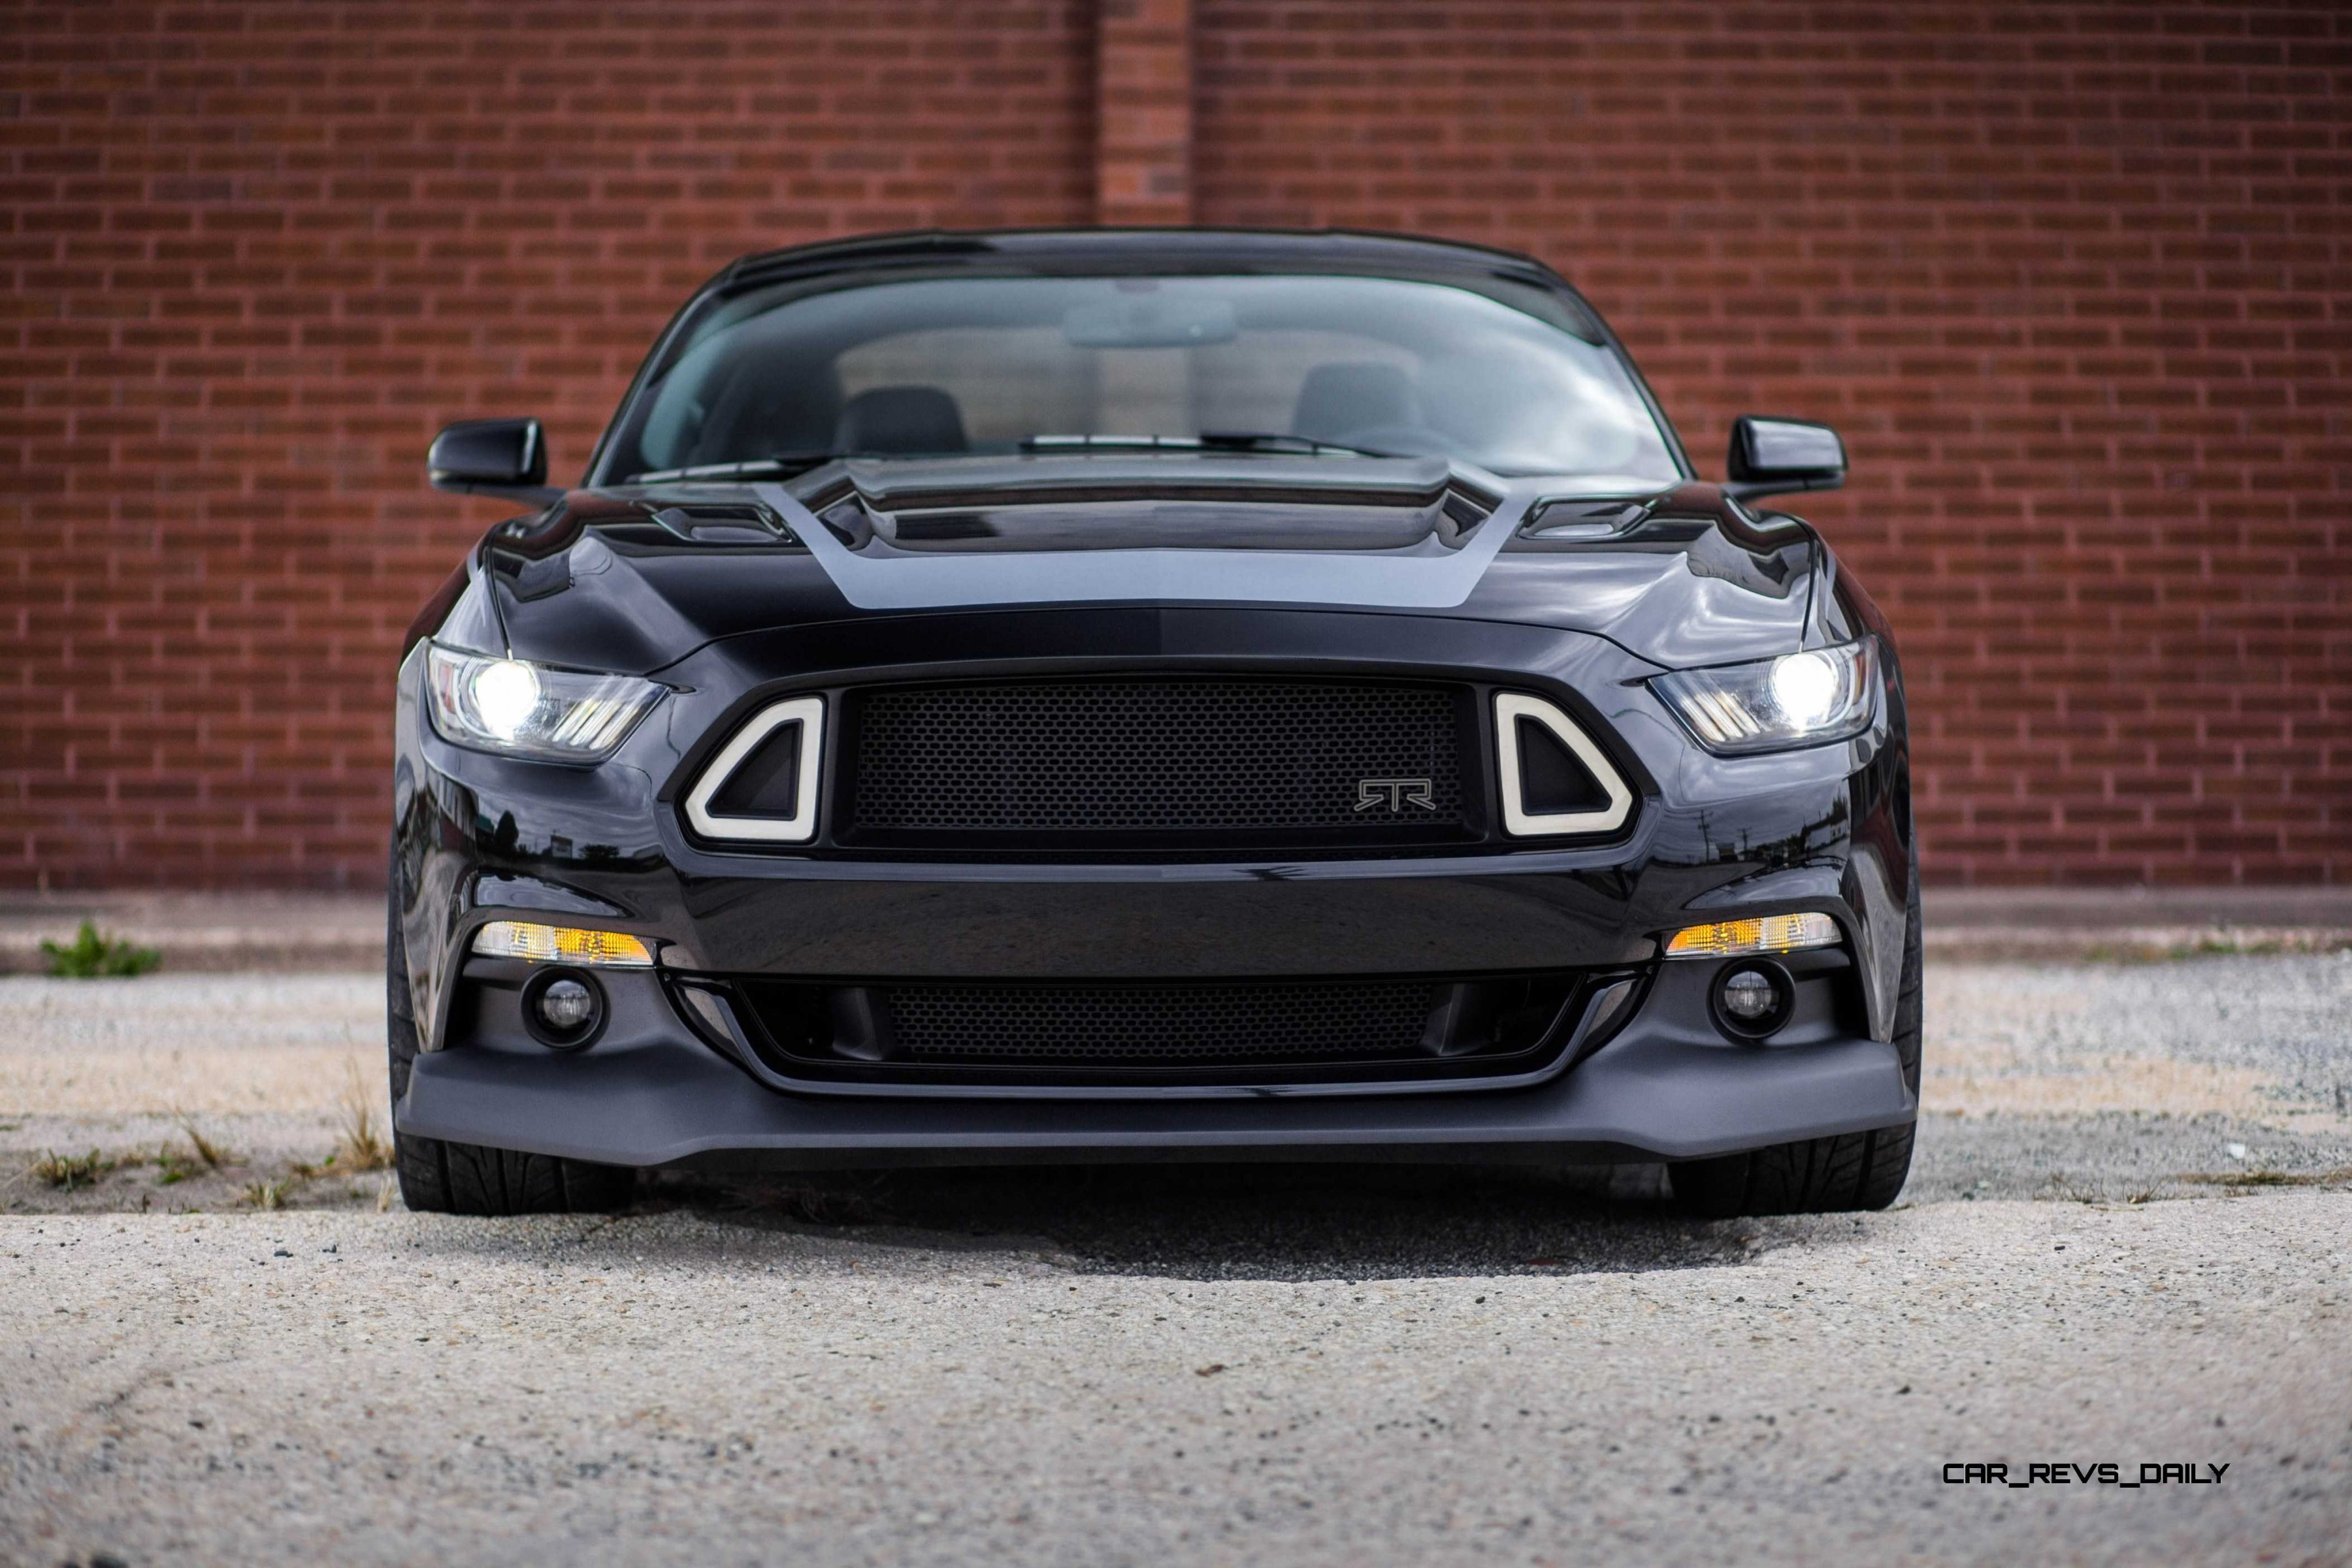 The Crew Ford Mustang Gt Specs 2015 Rtr Spec 5 Widebody Joins Ready To Rock Custom